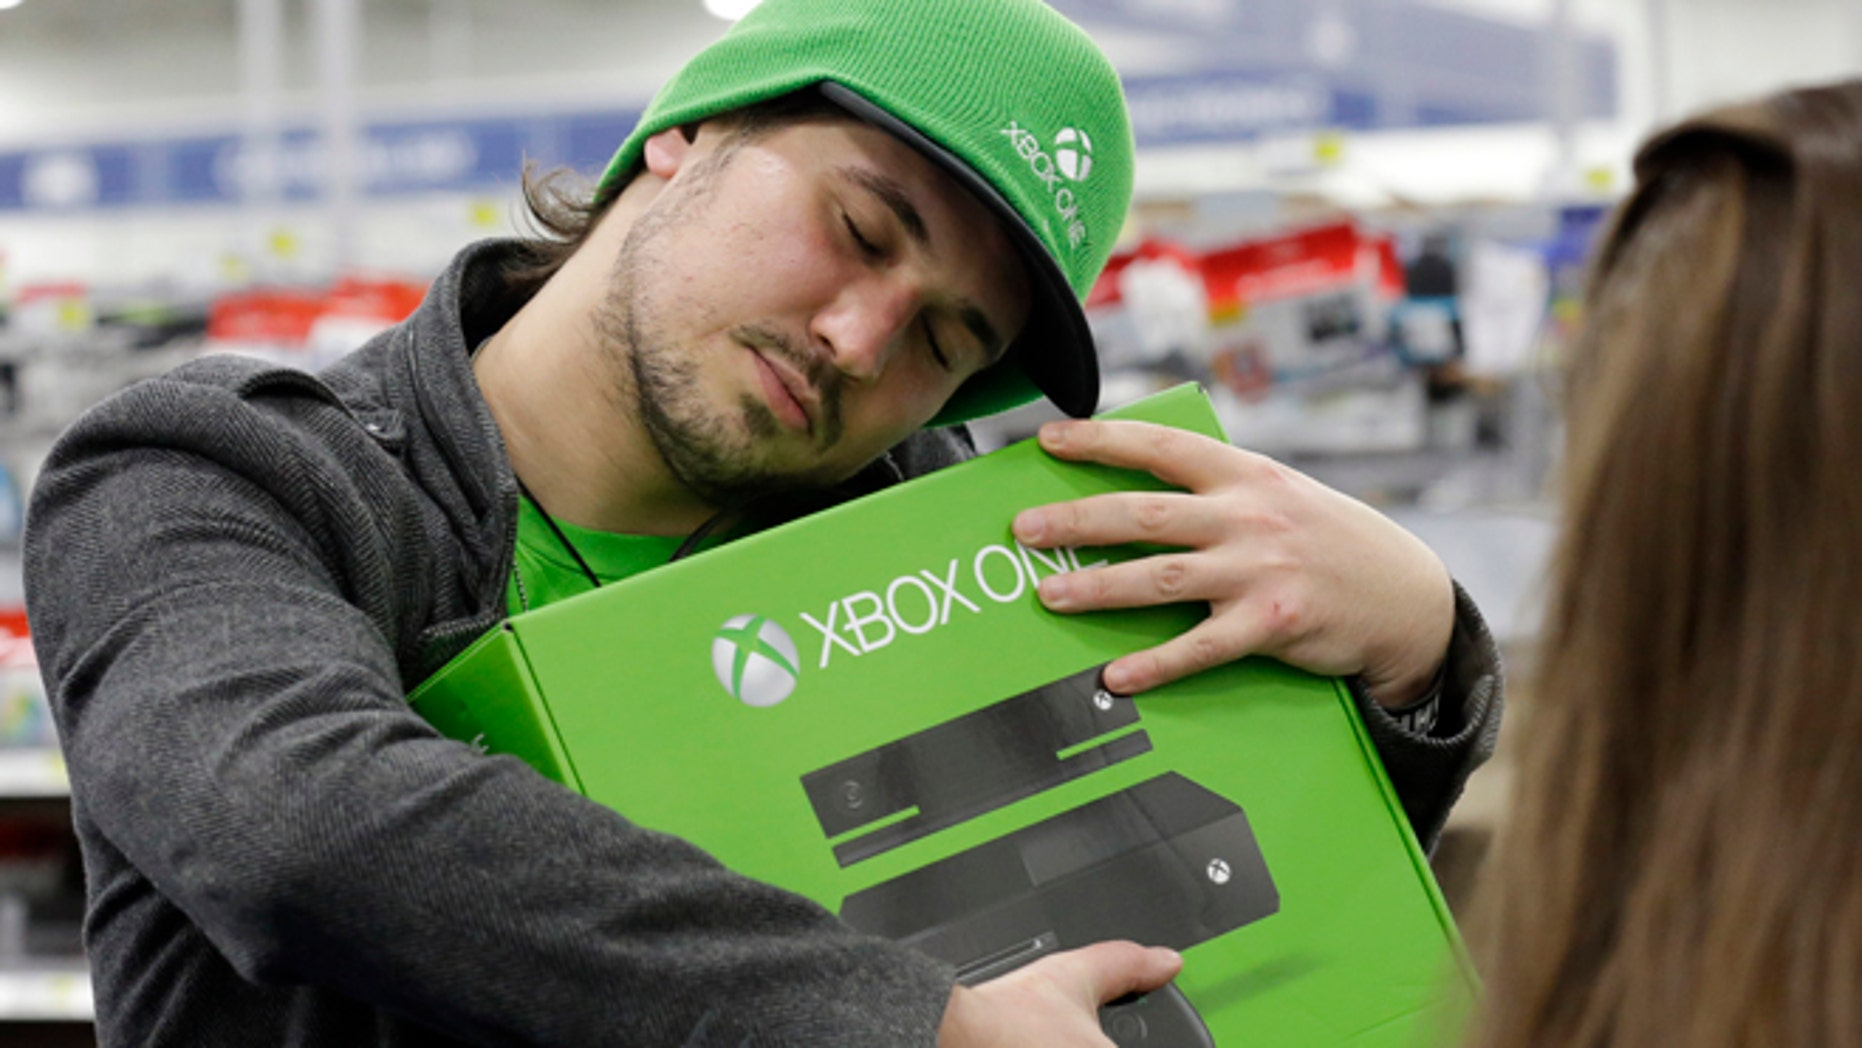 Emanuel Jumatate, from Chicago, hugs his new Xbox One after he purchased it at a Best Buy on Friday, Nov. 22, 2013, in Evanston, Ill. Microsoft is billing the Xbox One, which includes an updated Kinect motion sensor, as an all-in-one entertainment system rather than just a gaming console. (AP Photo/Nam Y. Huh)